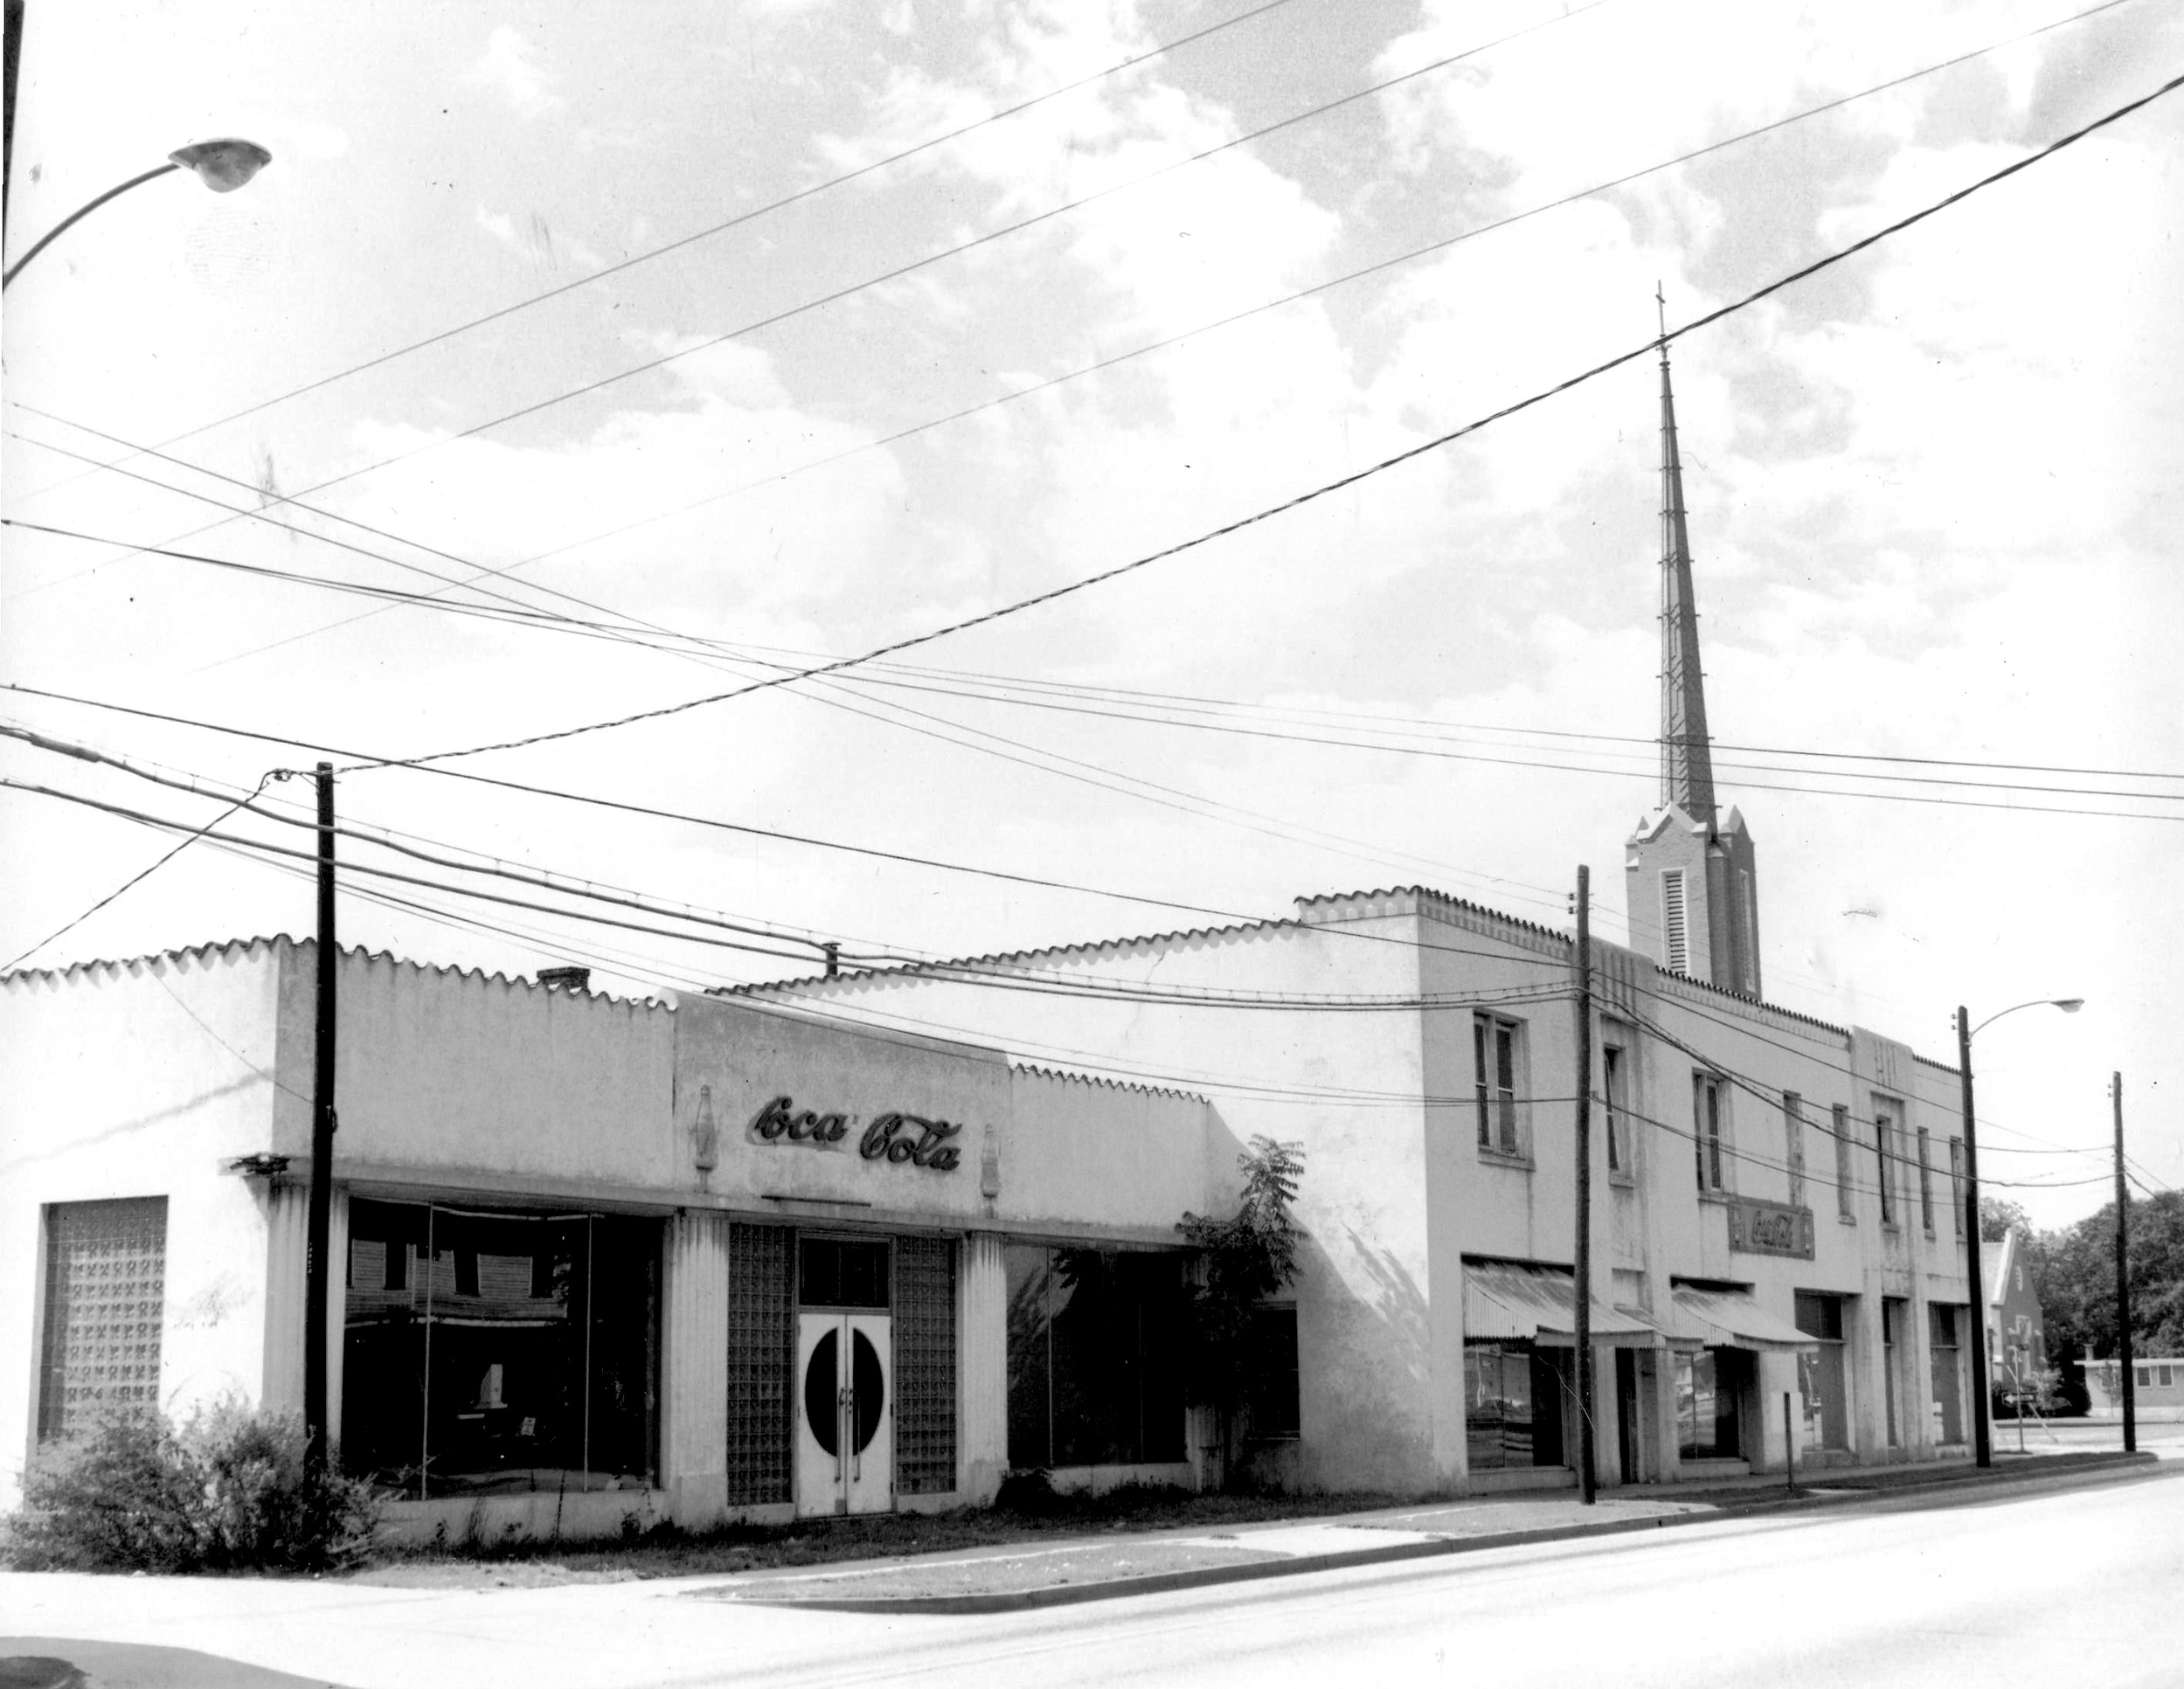 Coca-Cola bottling plant on West Liberty Street, across Council Street from Trinity United Methodist Church, is shown. The business later moved to a new building at the intersection of U.S. 76 and 378.